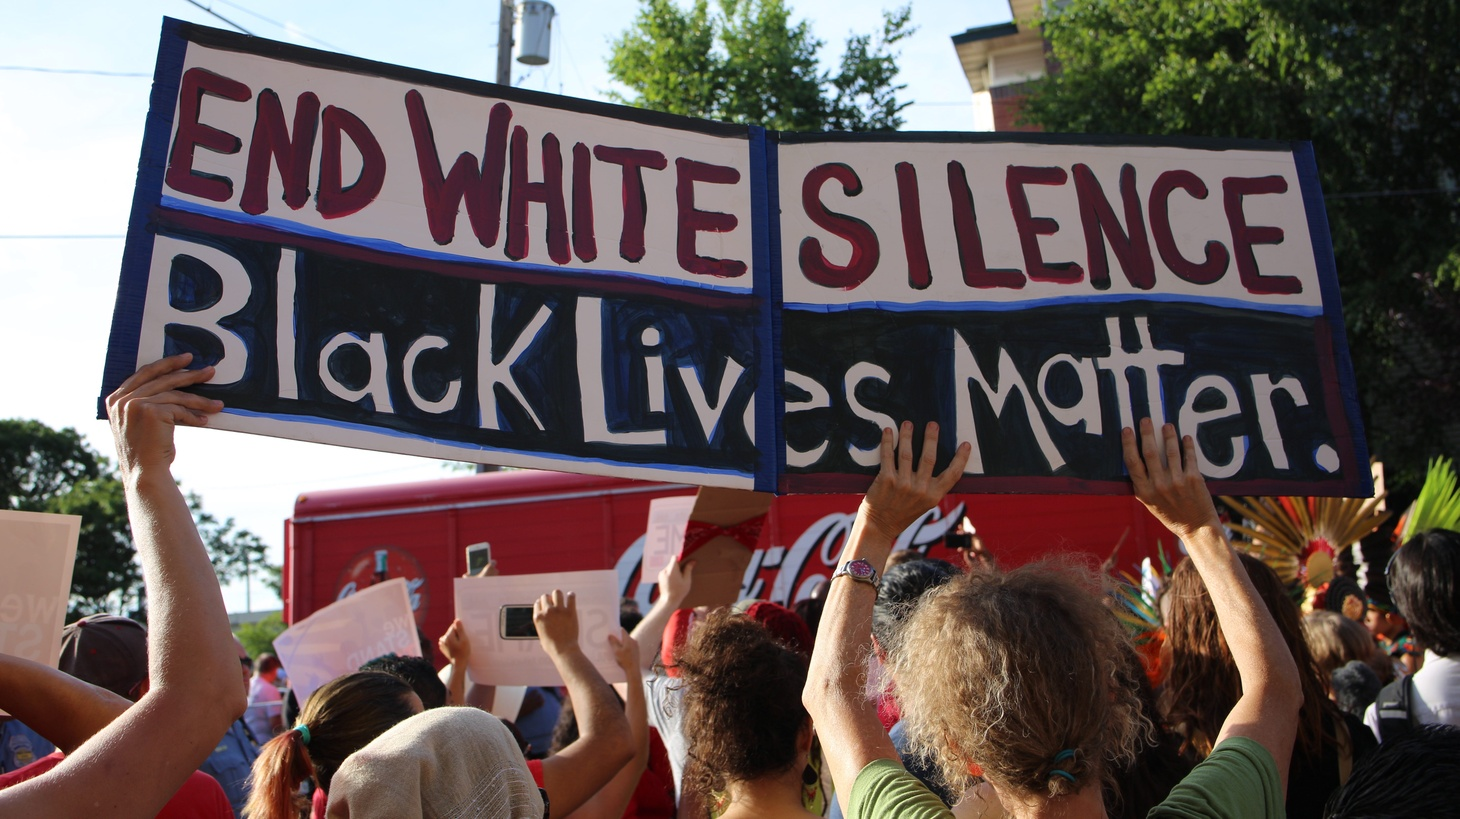 Black Lives Matter protest in Minneapolis.